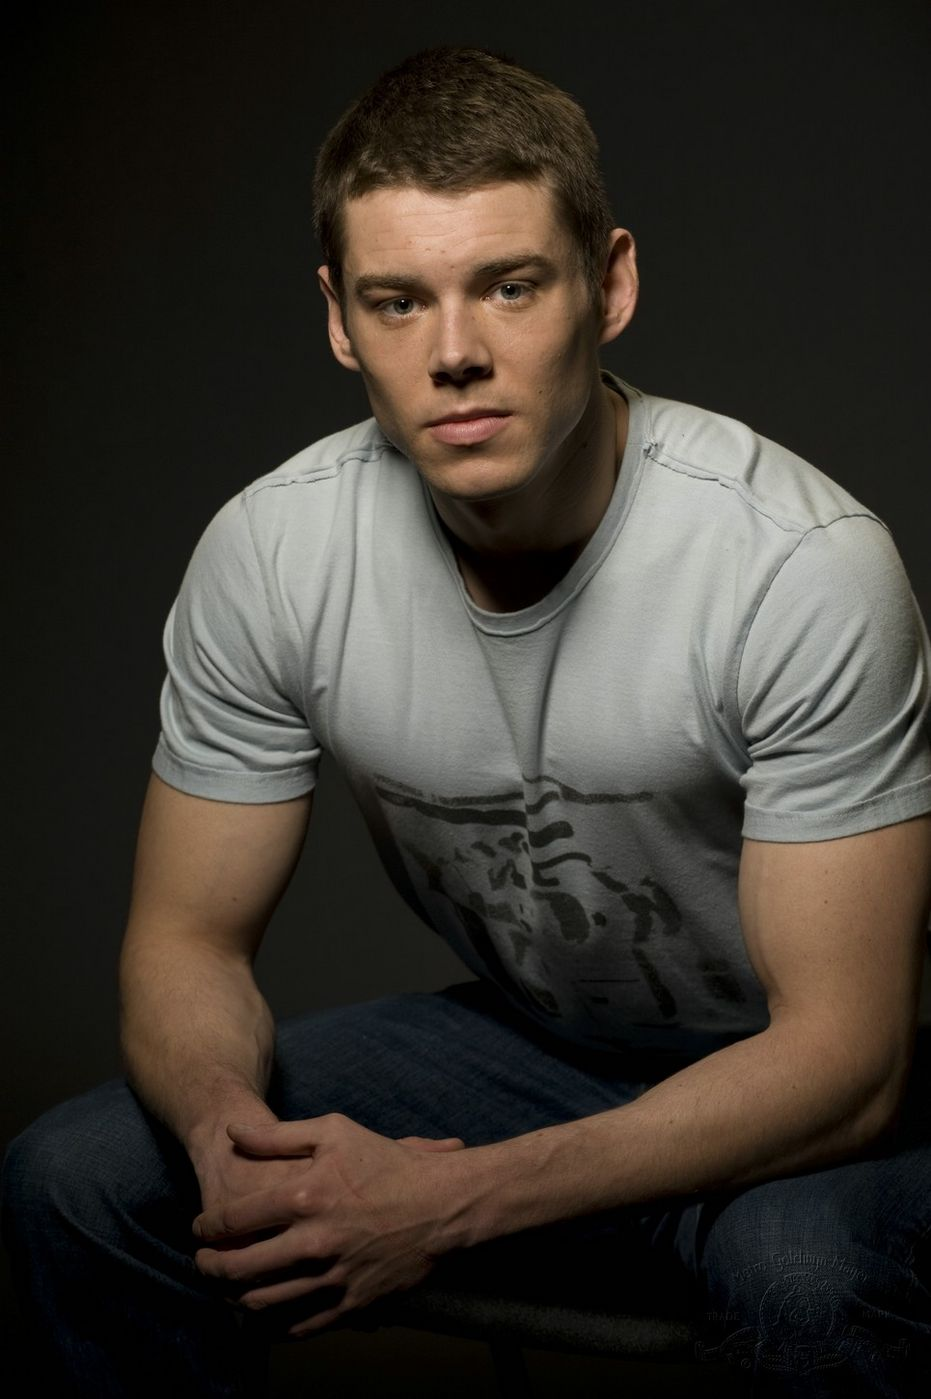 Brian j smith person of interest wiki fandom powered by wikia